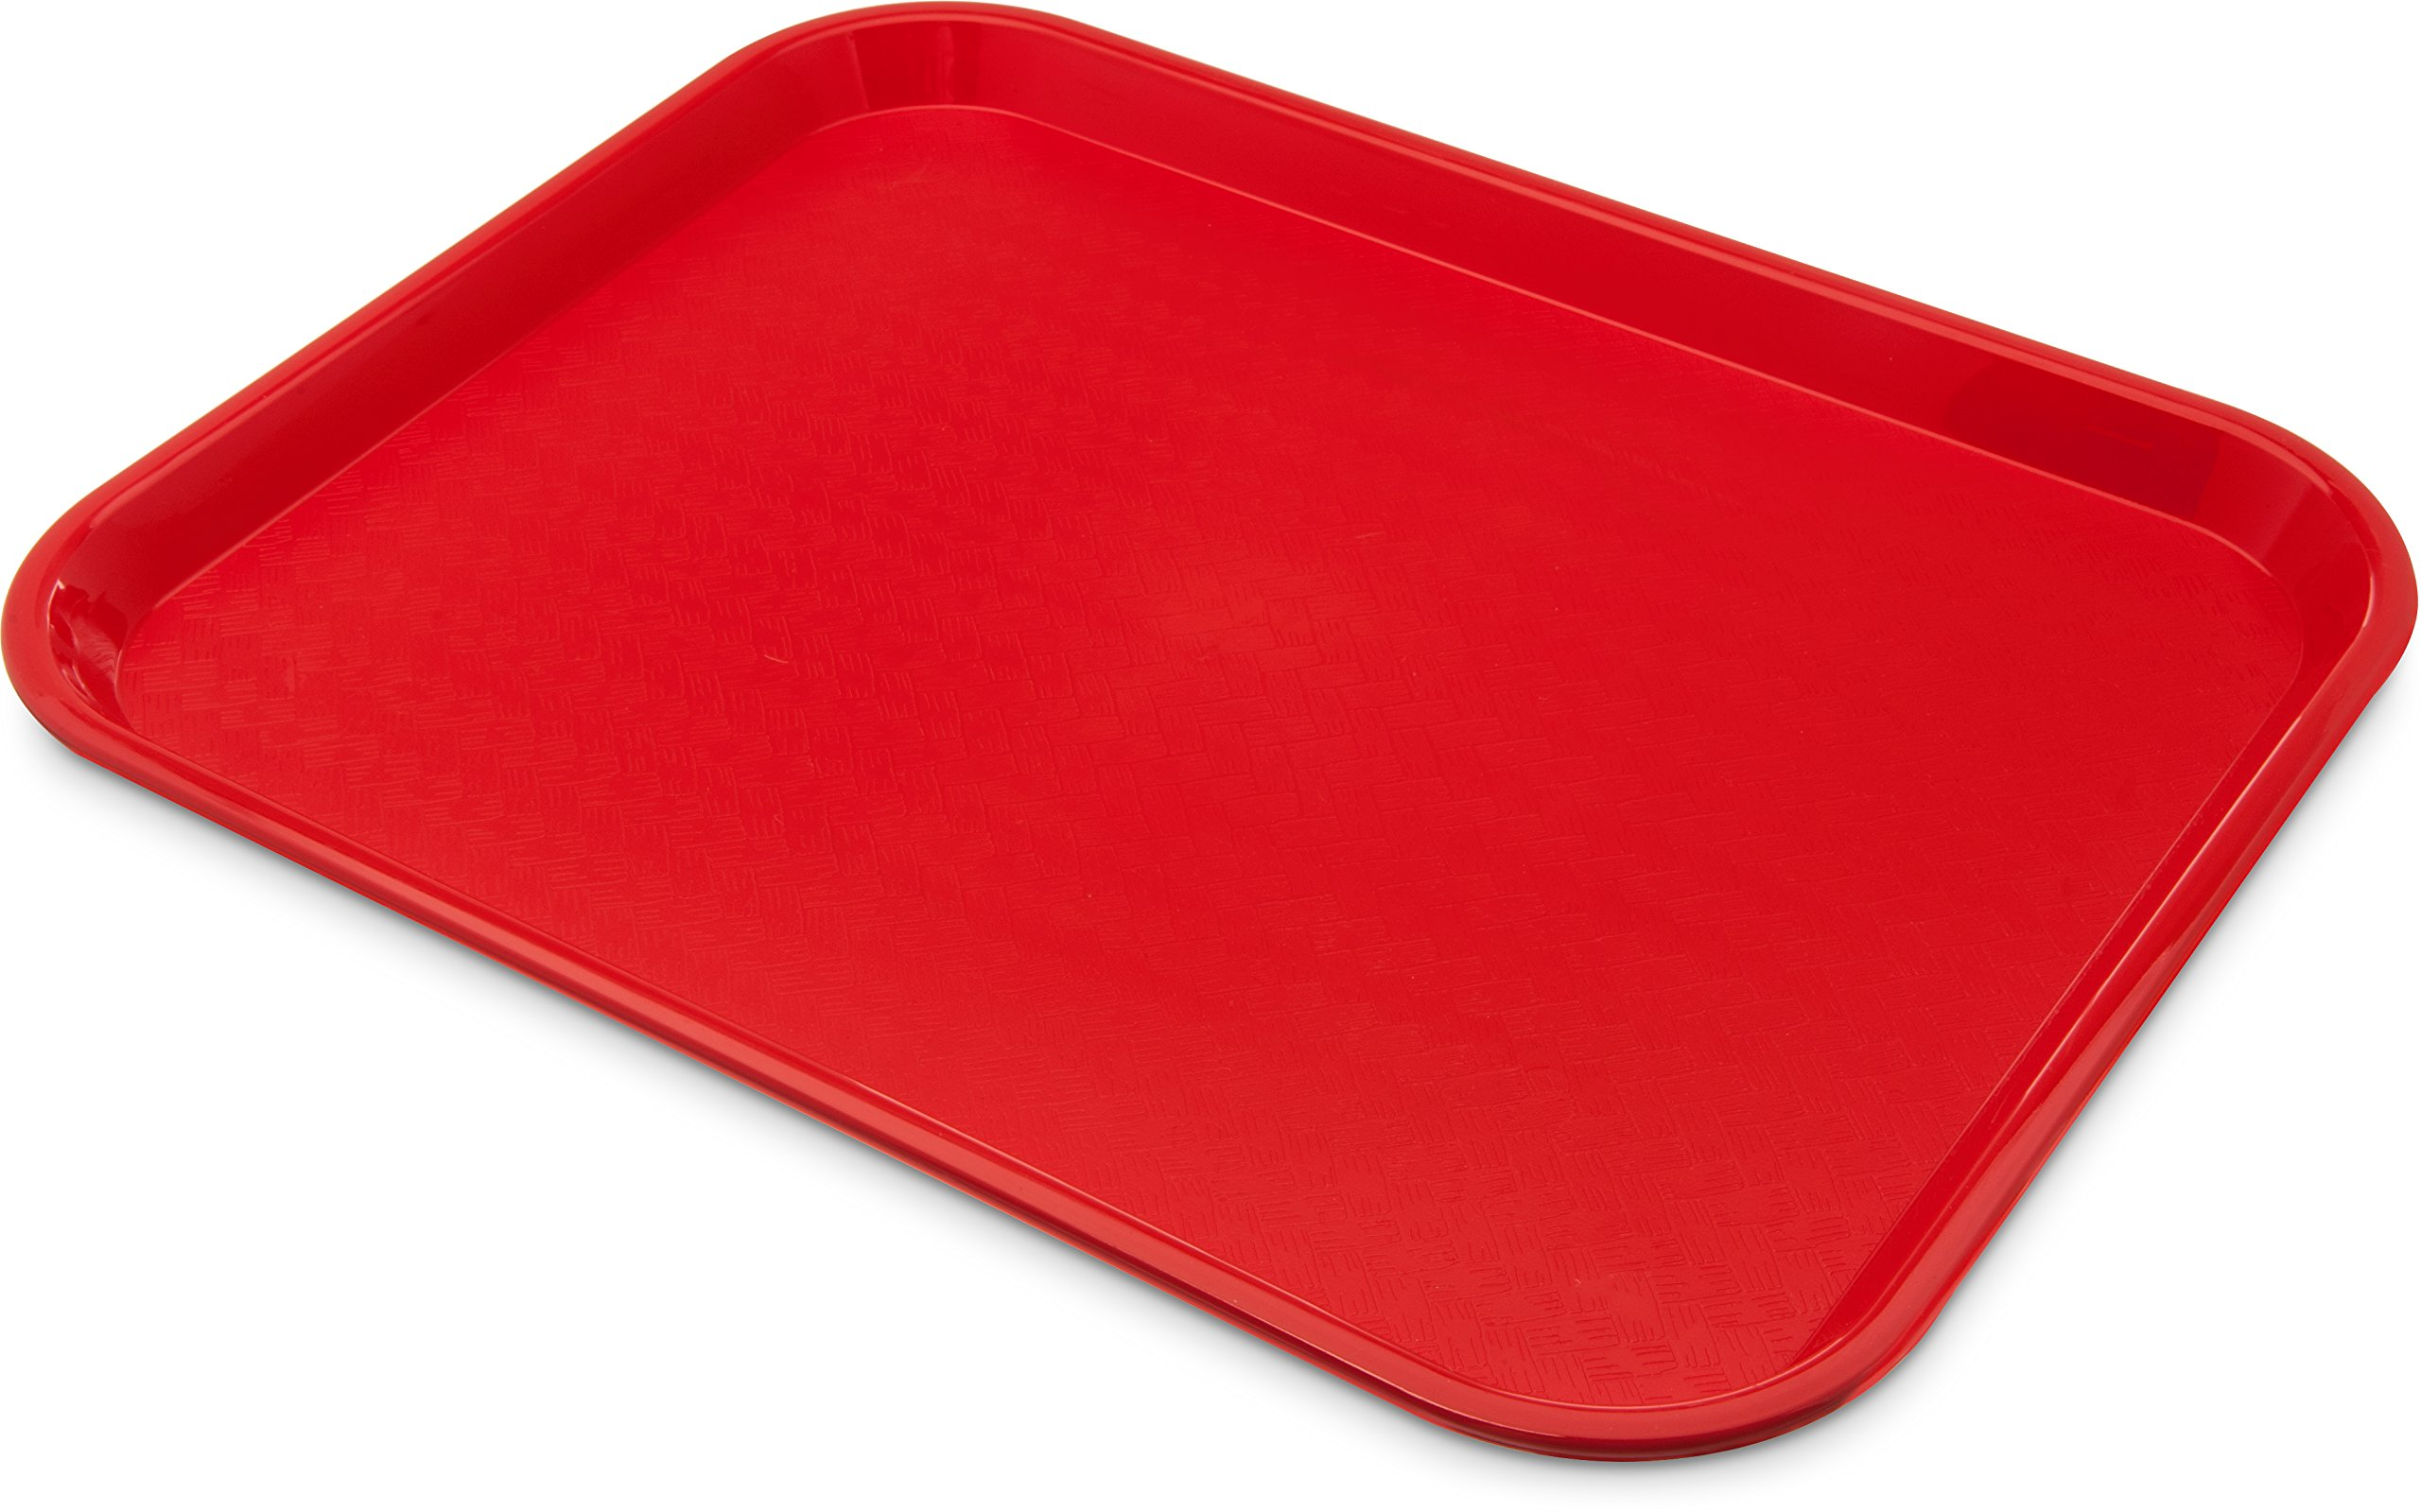 Carlisle CT141805 Café Standard Cafeteria / Fast Food Tray, 14'' x 18'', Red (Pack of 12)